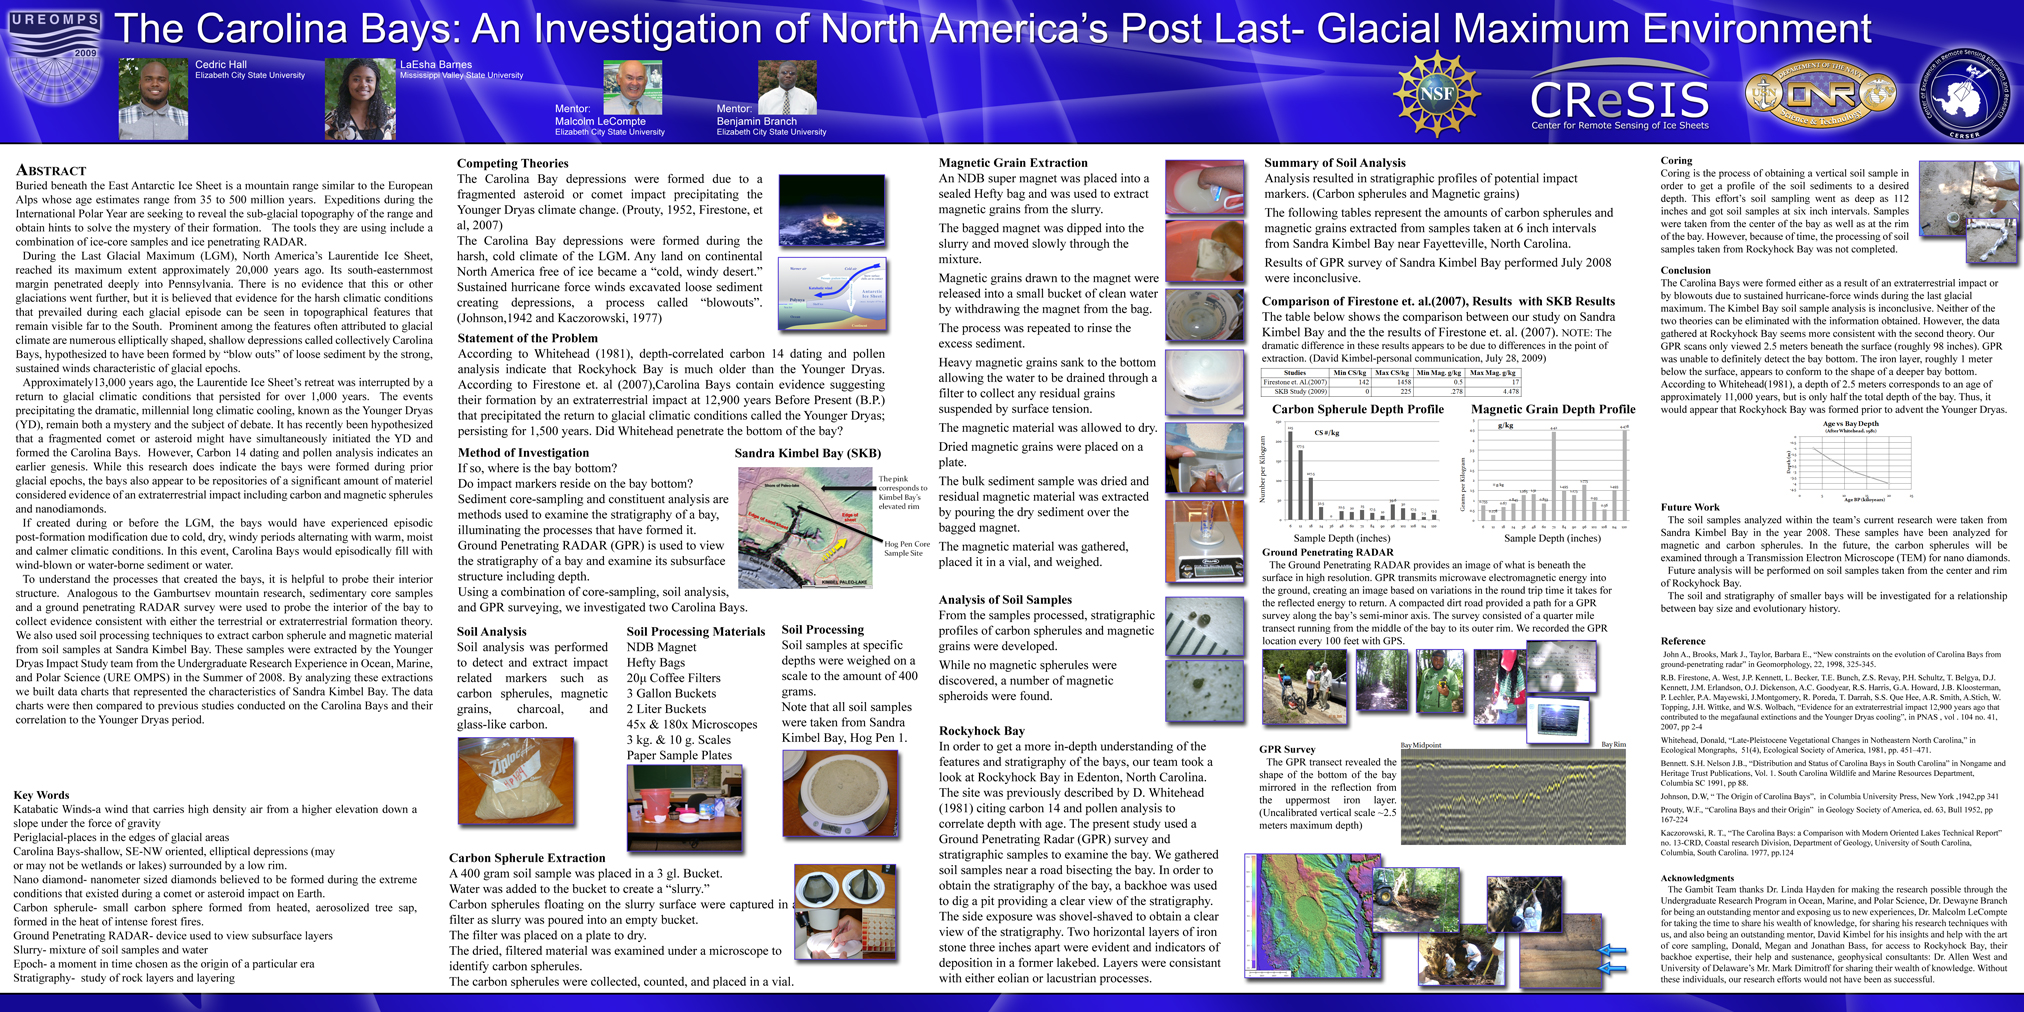 paper poster research A poster paper is a way of presenting a research or education paper by posting text constructing the poster.